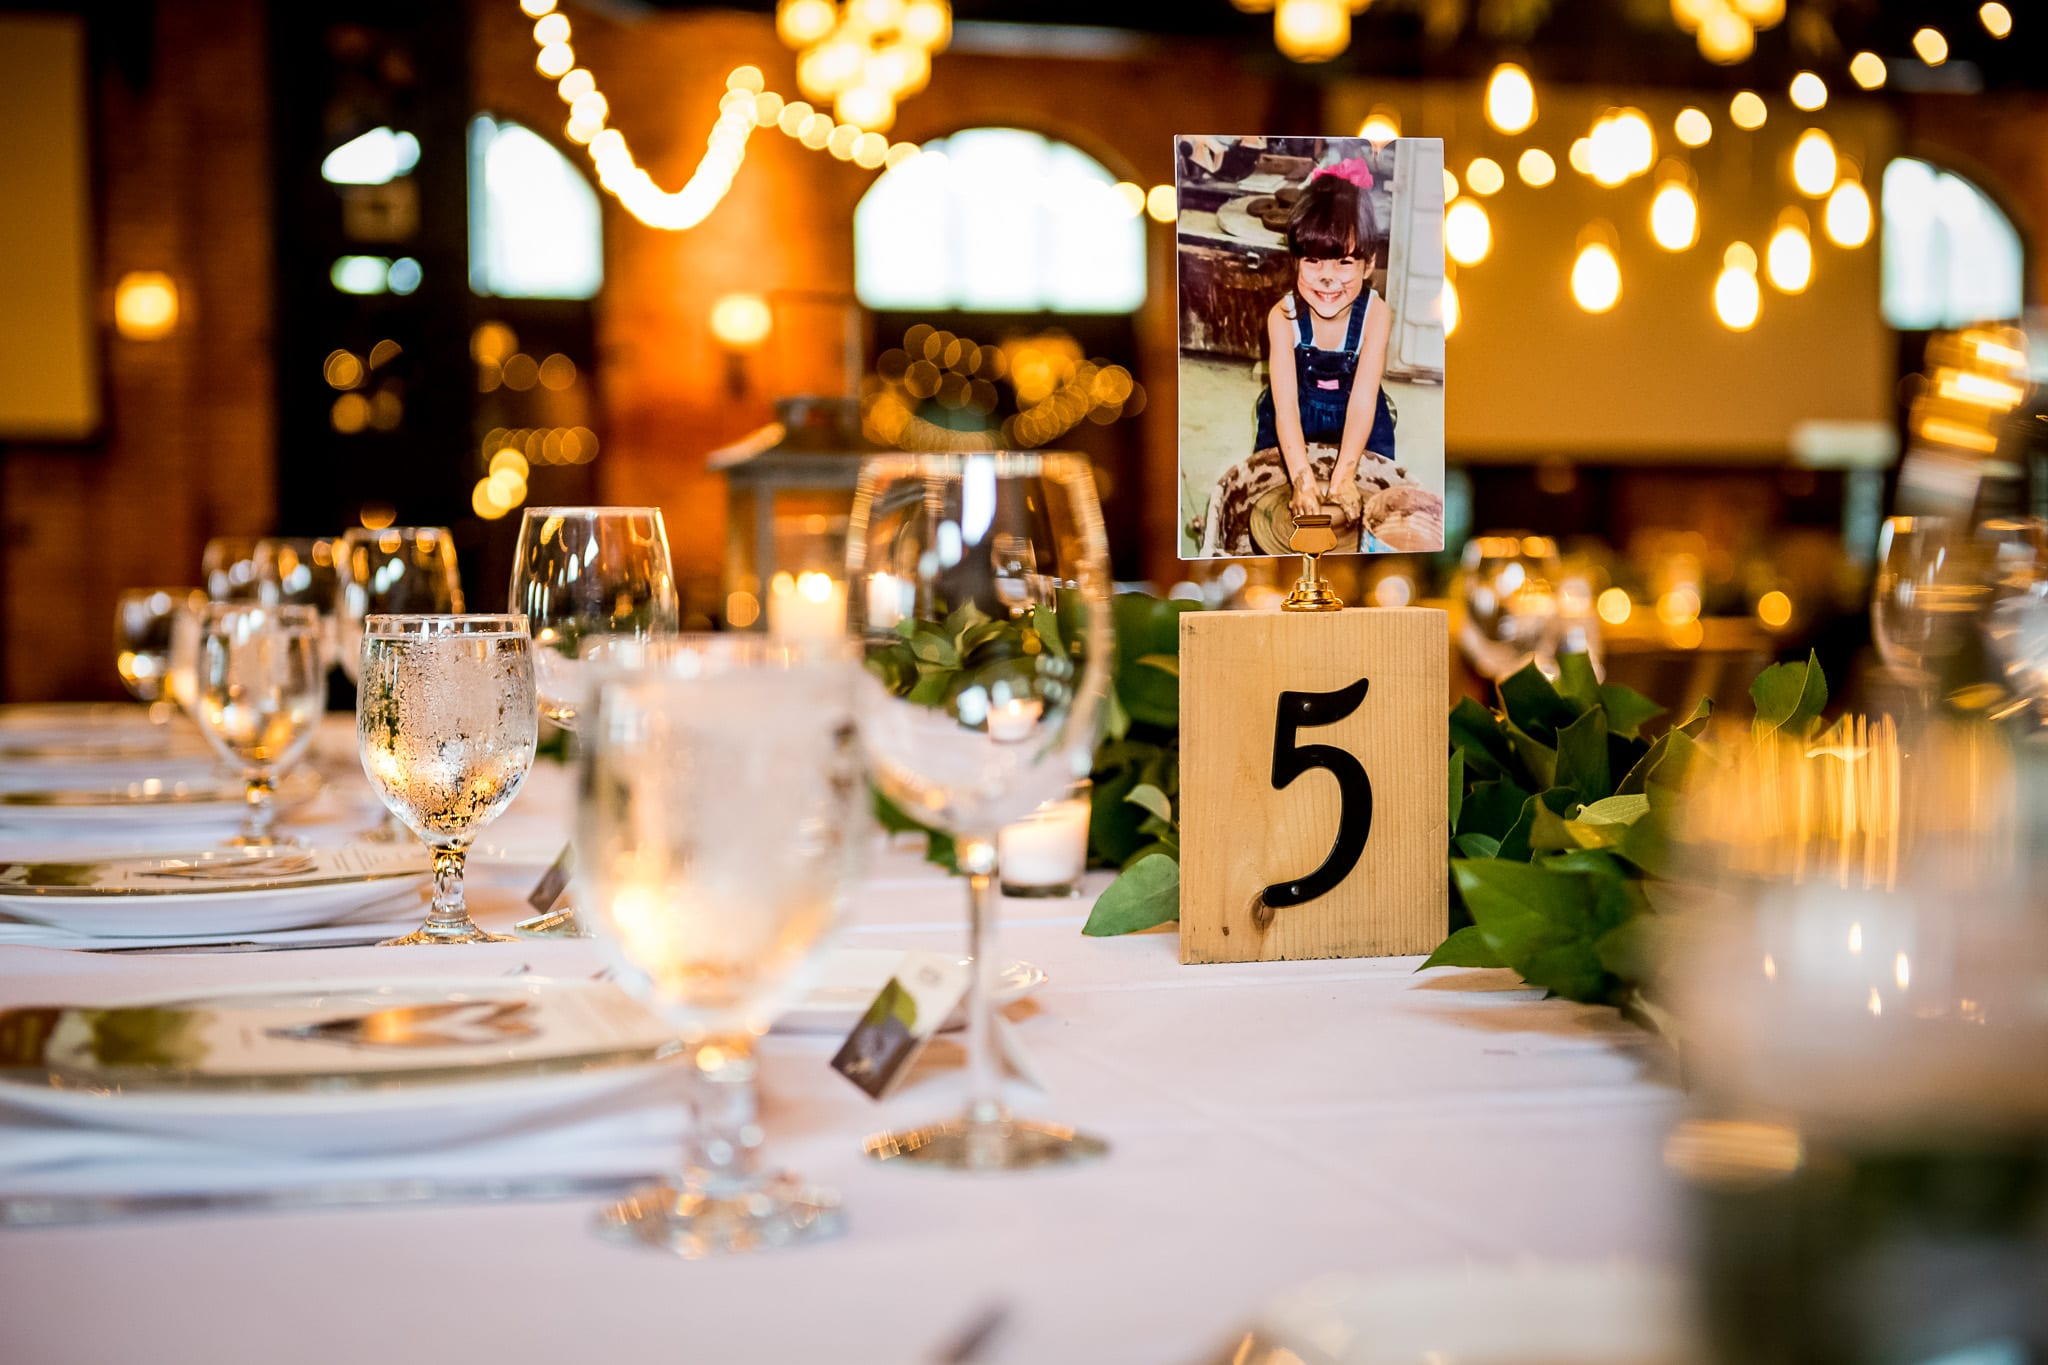 Table setting and view of the space inside the Nicollet Island Pavilion during a wedding reception